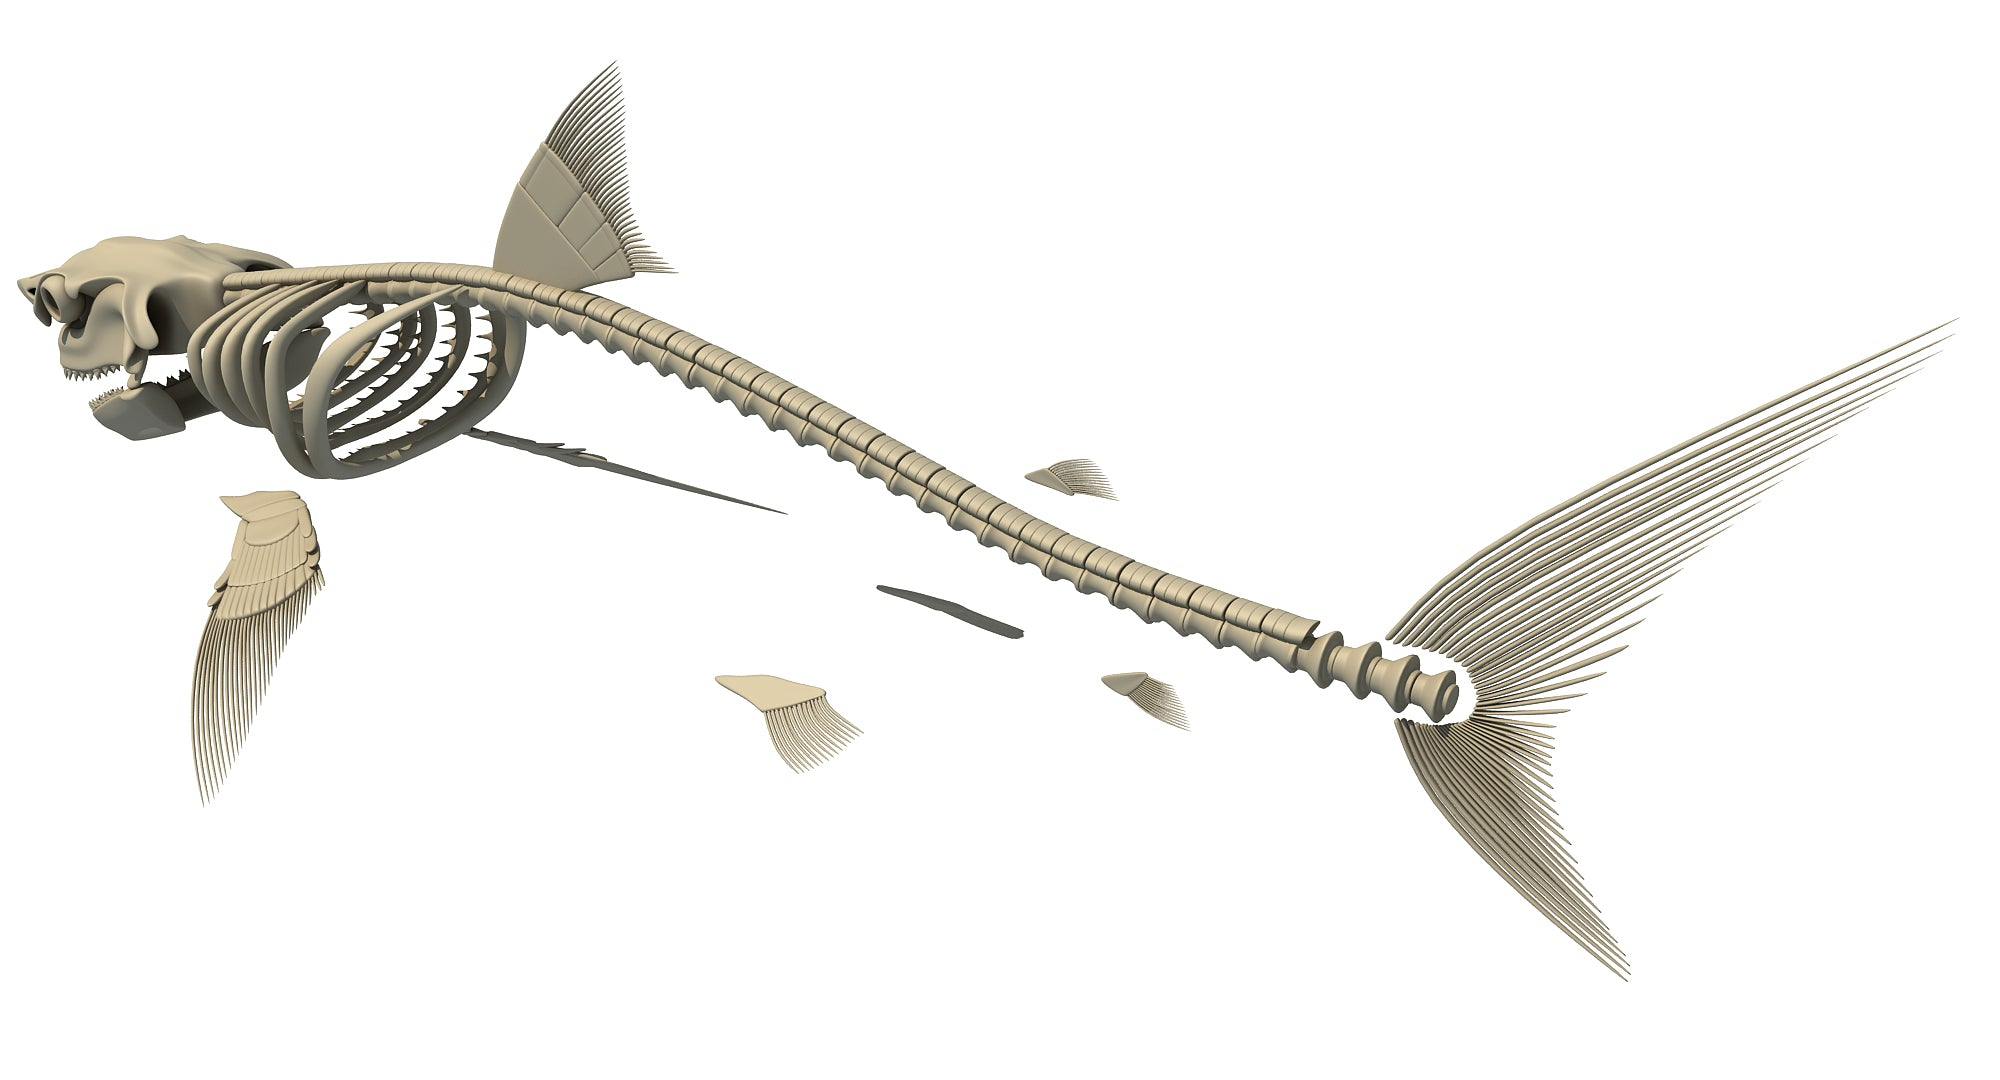 White Shark Skeleton 3D Model